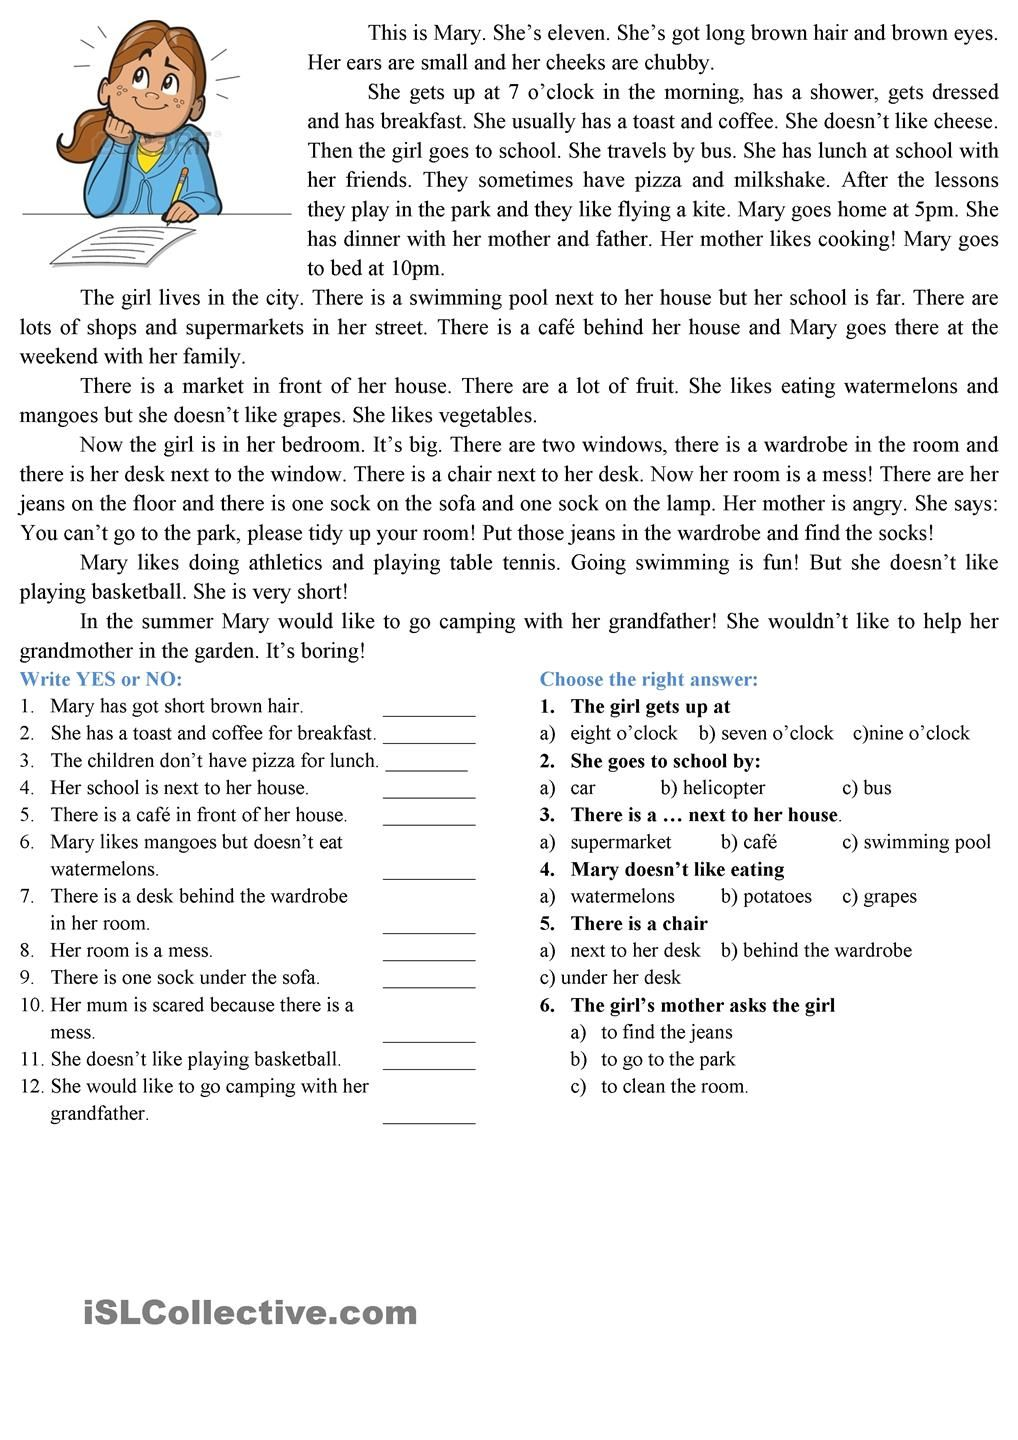 Worksheets Reading Comprehension Multiple Choice Worksheets reading comprehension teaching english adults teens comprehension